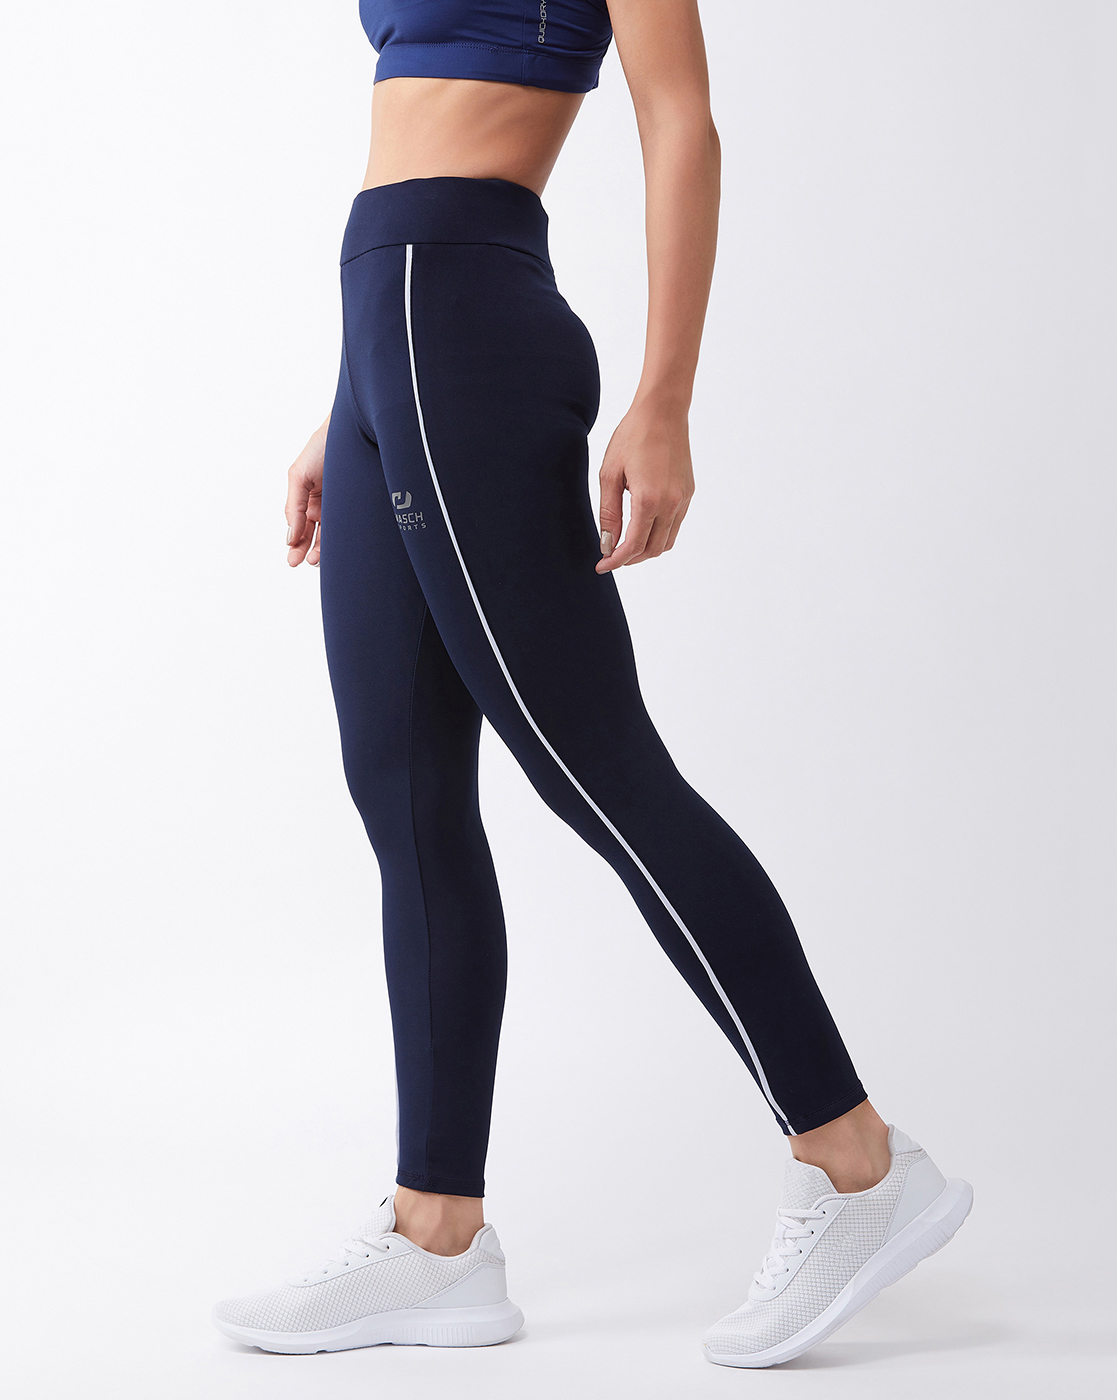 Masch Sports   Masch Sports Women's Navy Blue Solid Sports Tights with Front White Piping